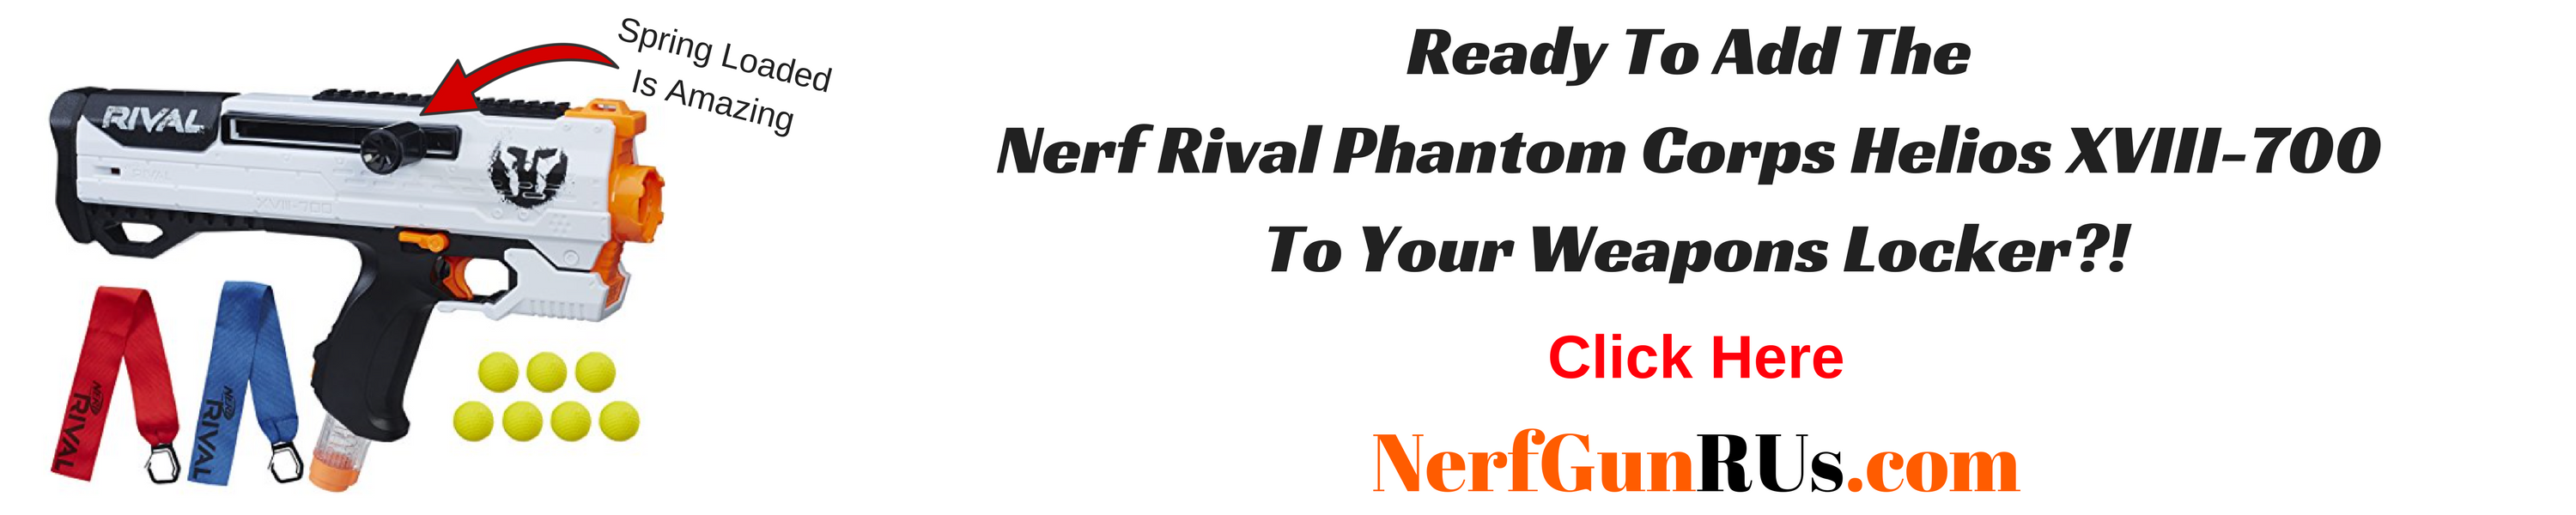 Ready To Add The Nerf Rival Phantom Corps Helios XVIII-700 To Your Weapons Locker | NerfGunRUs.com